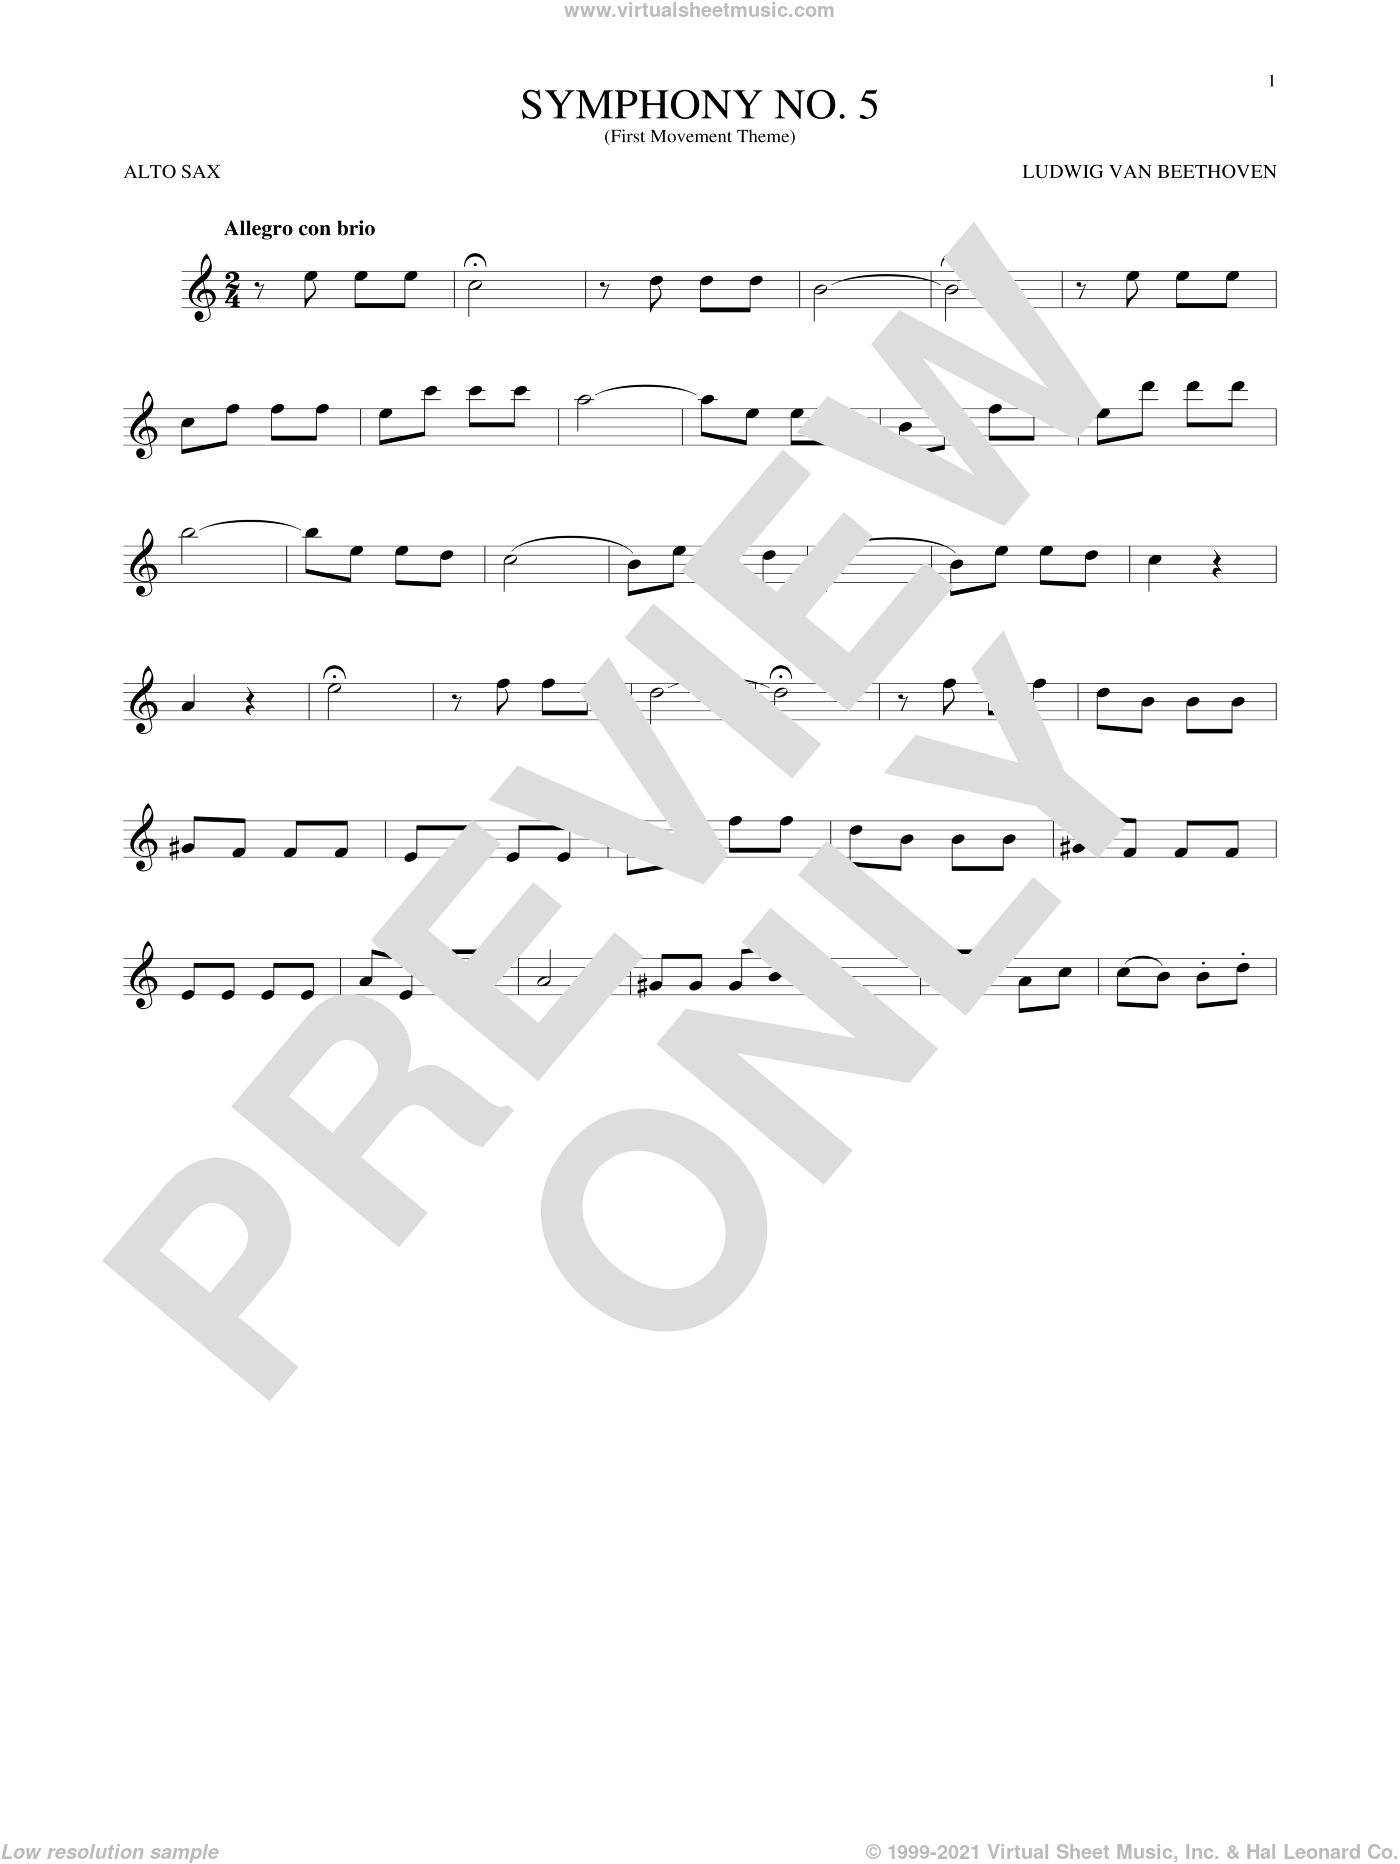 Symphony No. 5 In C Minor, First Movement Excerpt sheet music for alto saxophone solo by Ludwig van Beethoven, classical score, intermediate